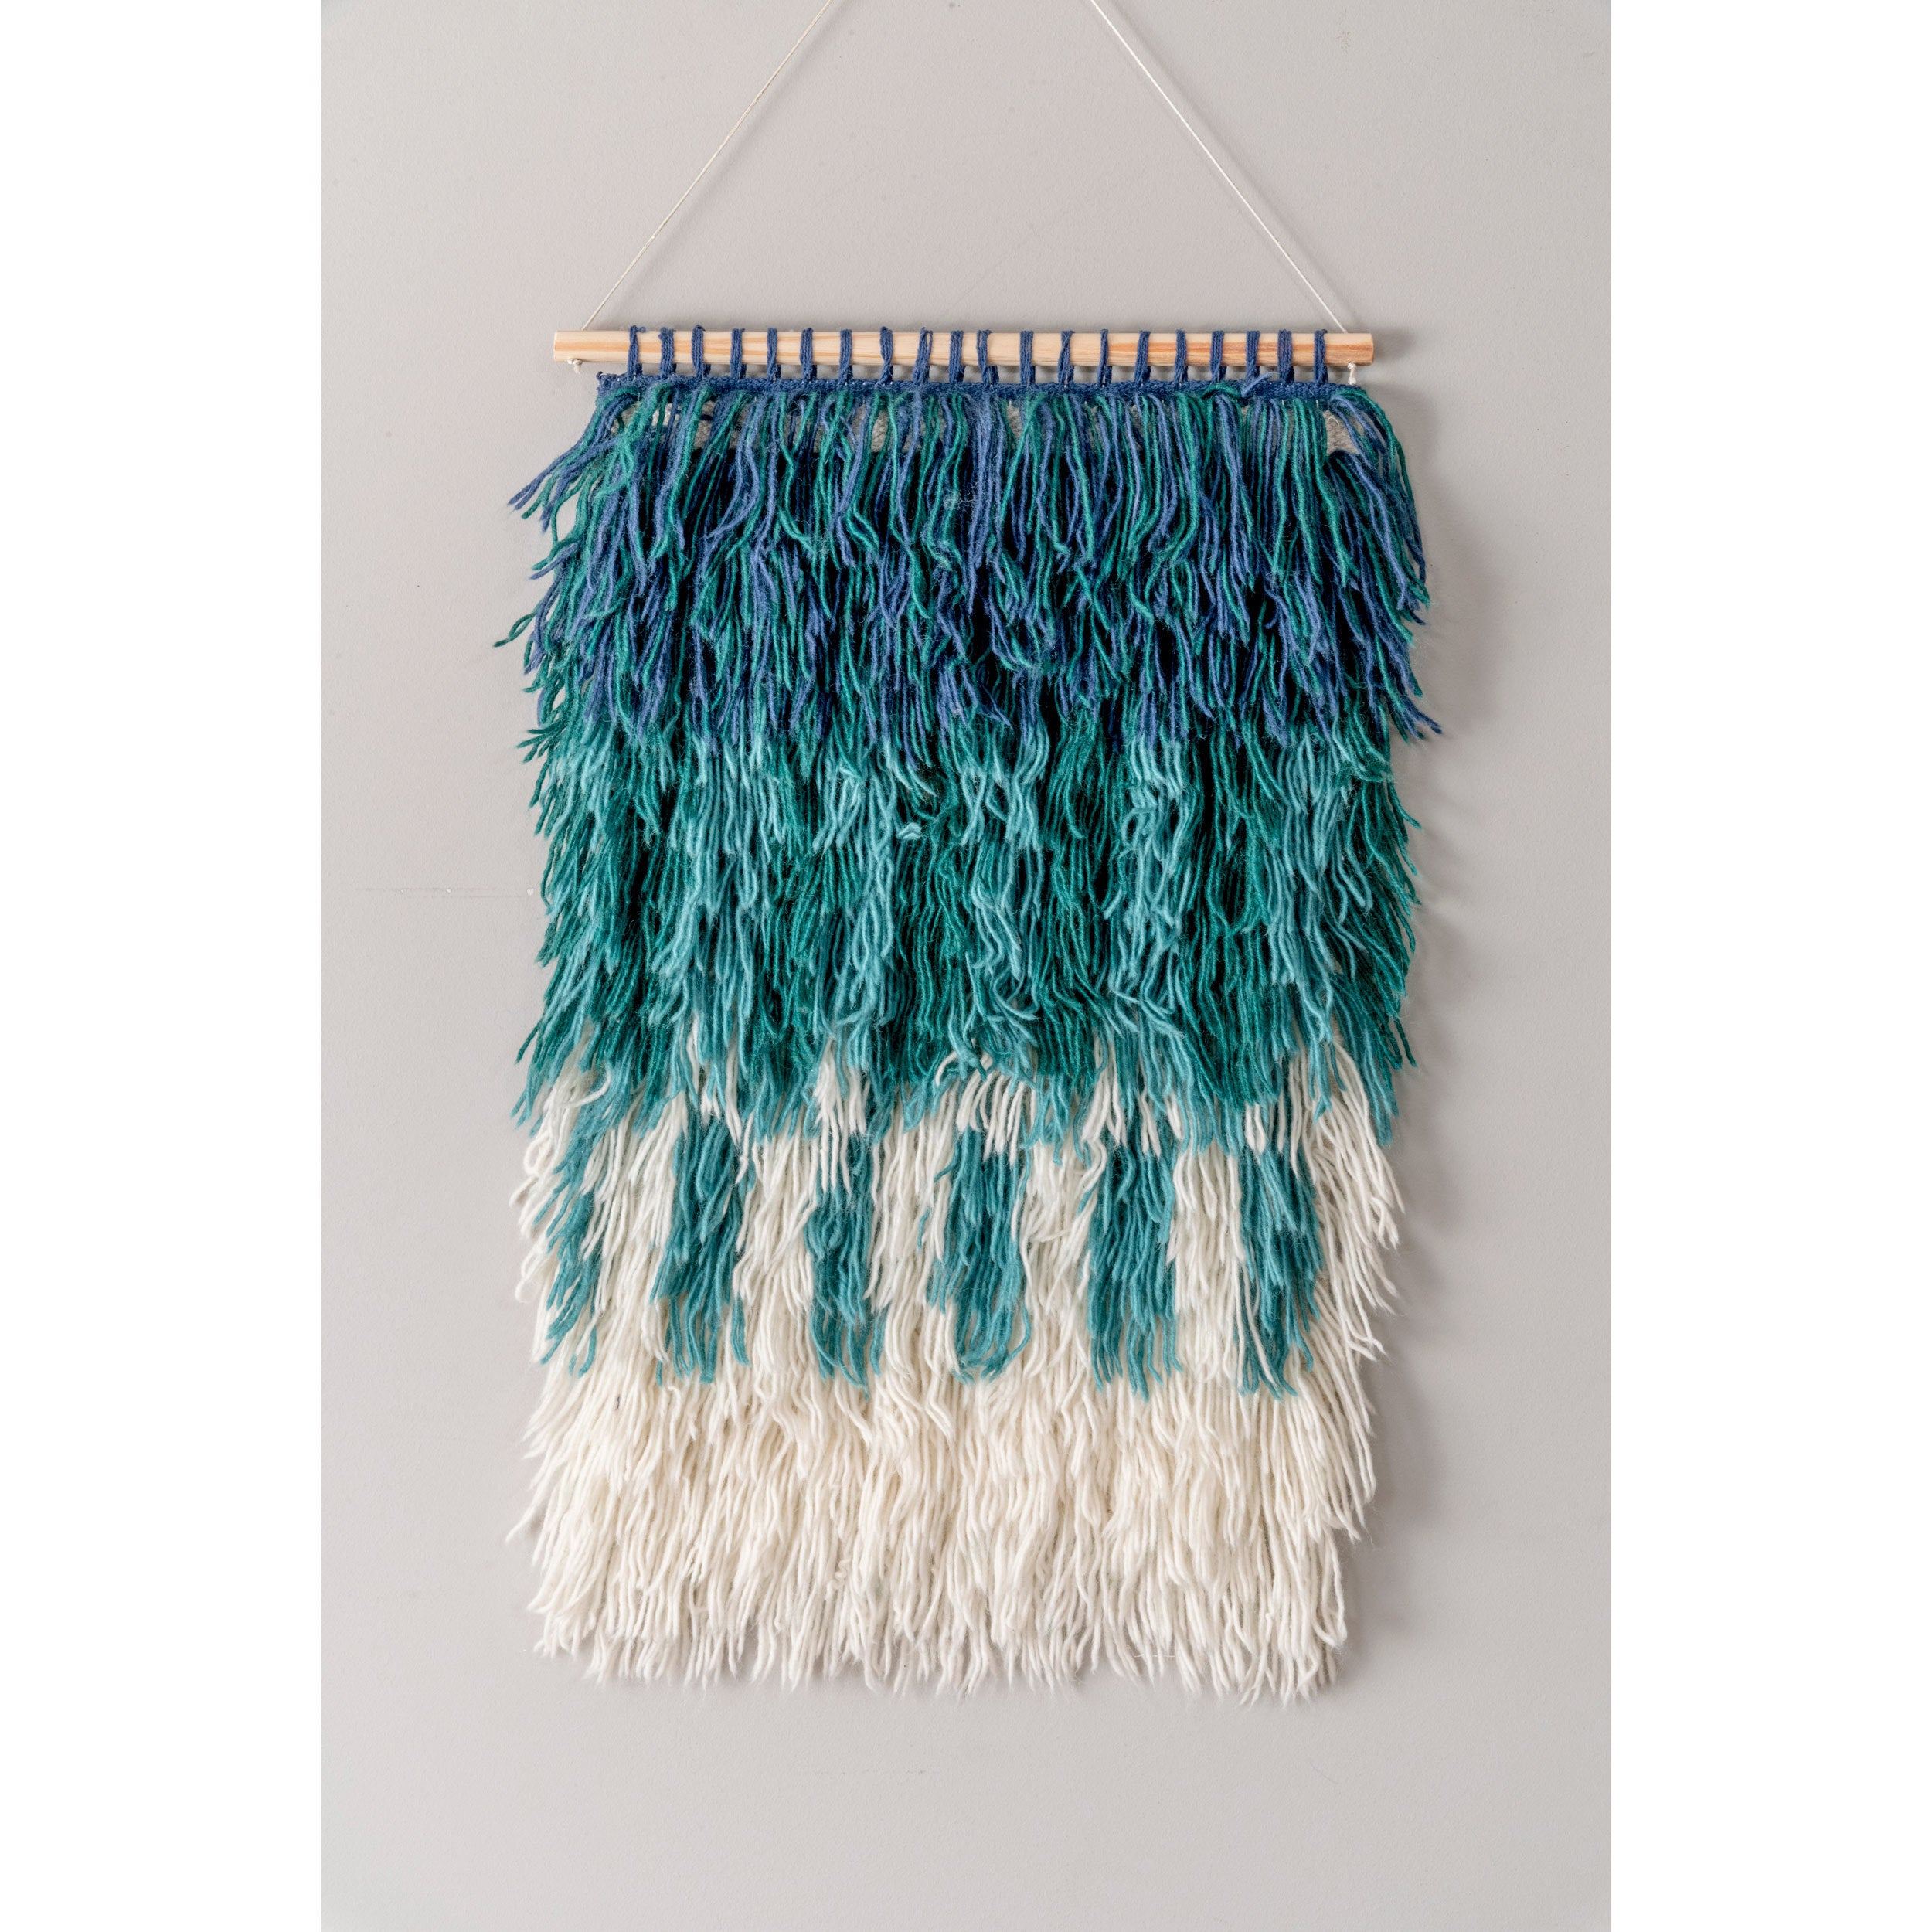 Shop Nuloom Handmade Modern Ombre Teal Shag Wall Hanging